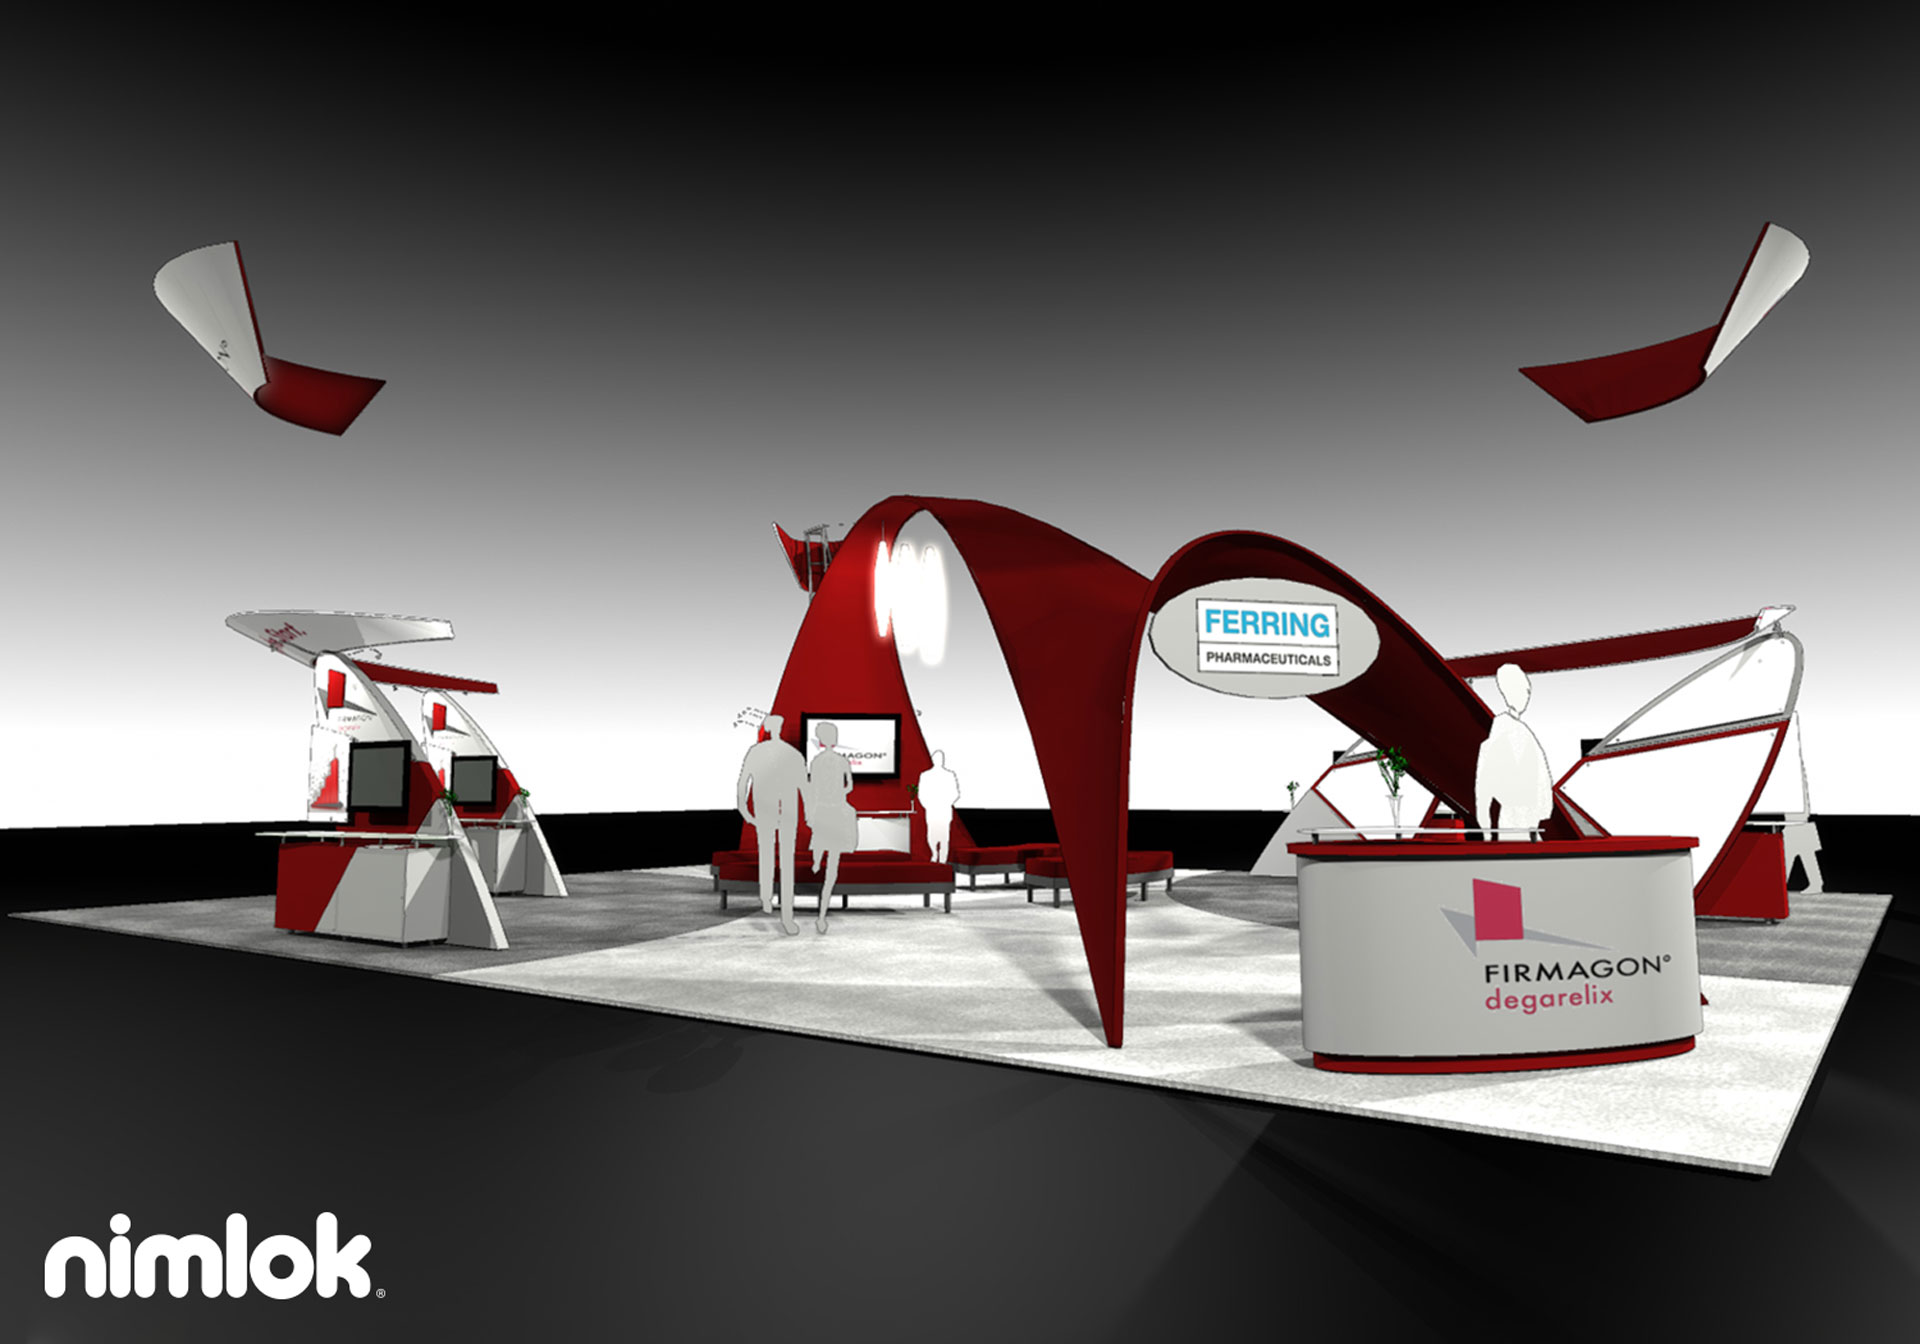 Ferring Pharmaceutical - 40x50 - trade show exhibit